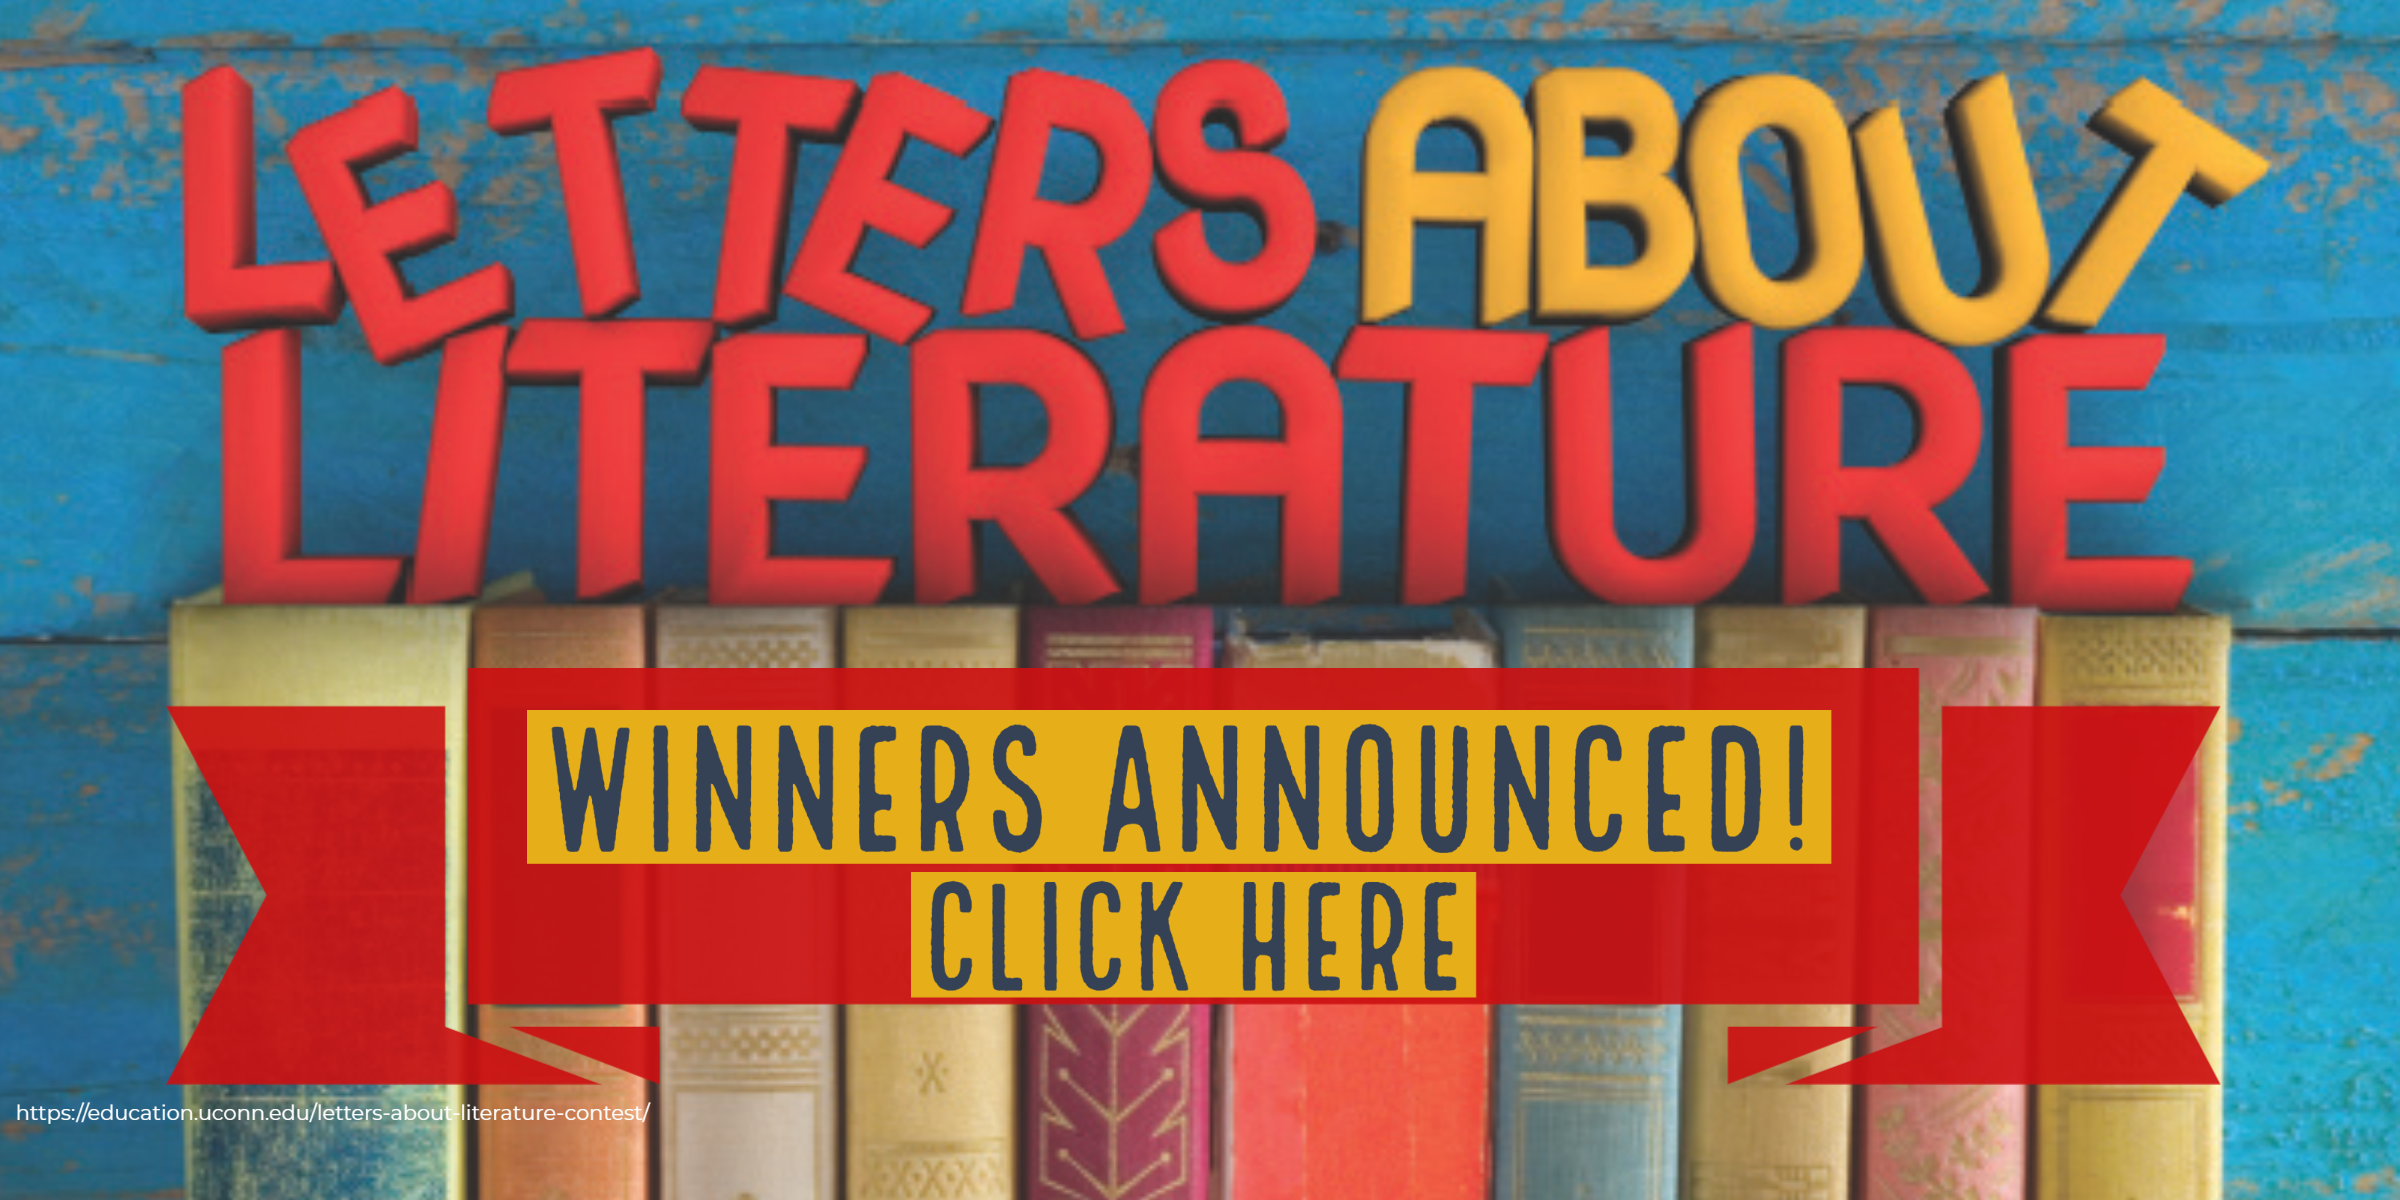 Announcing Letters About Literature Winners! Click here!